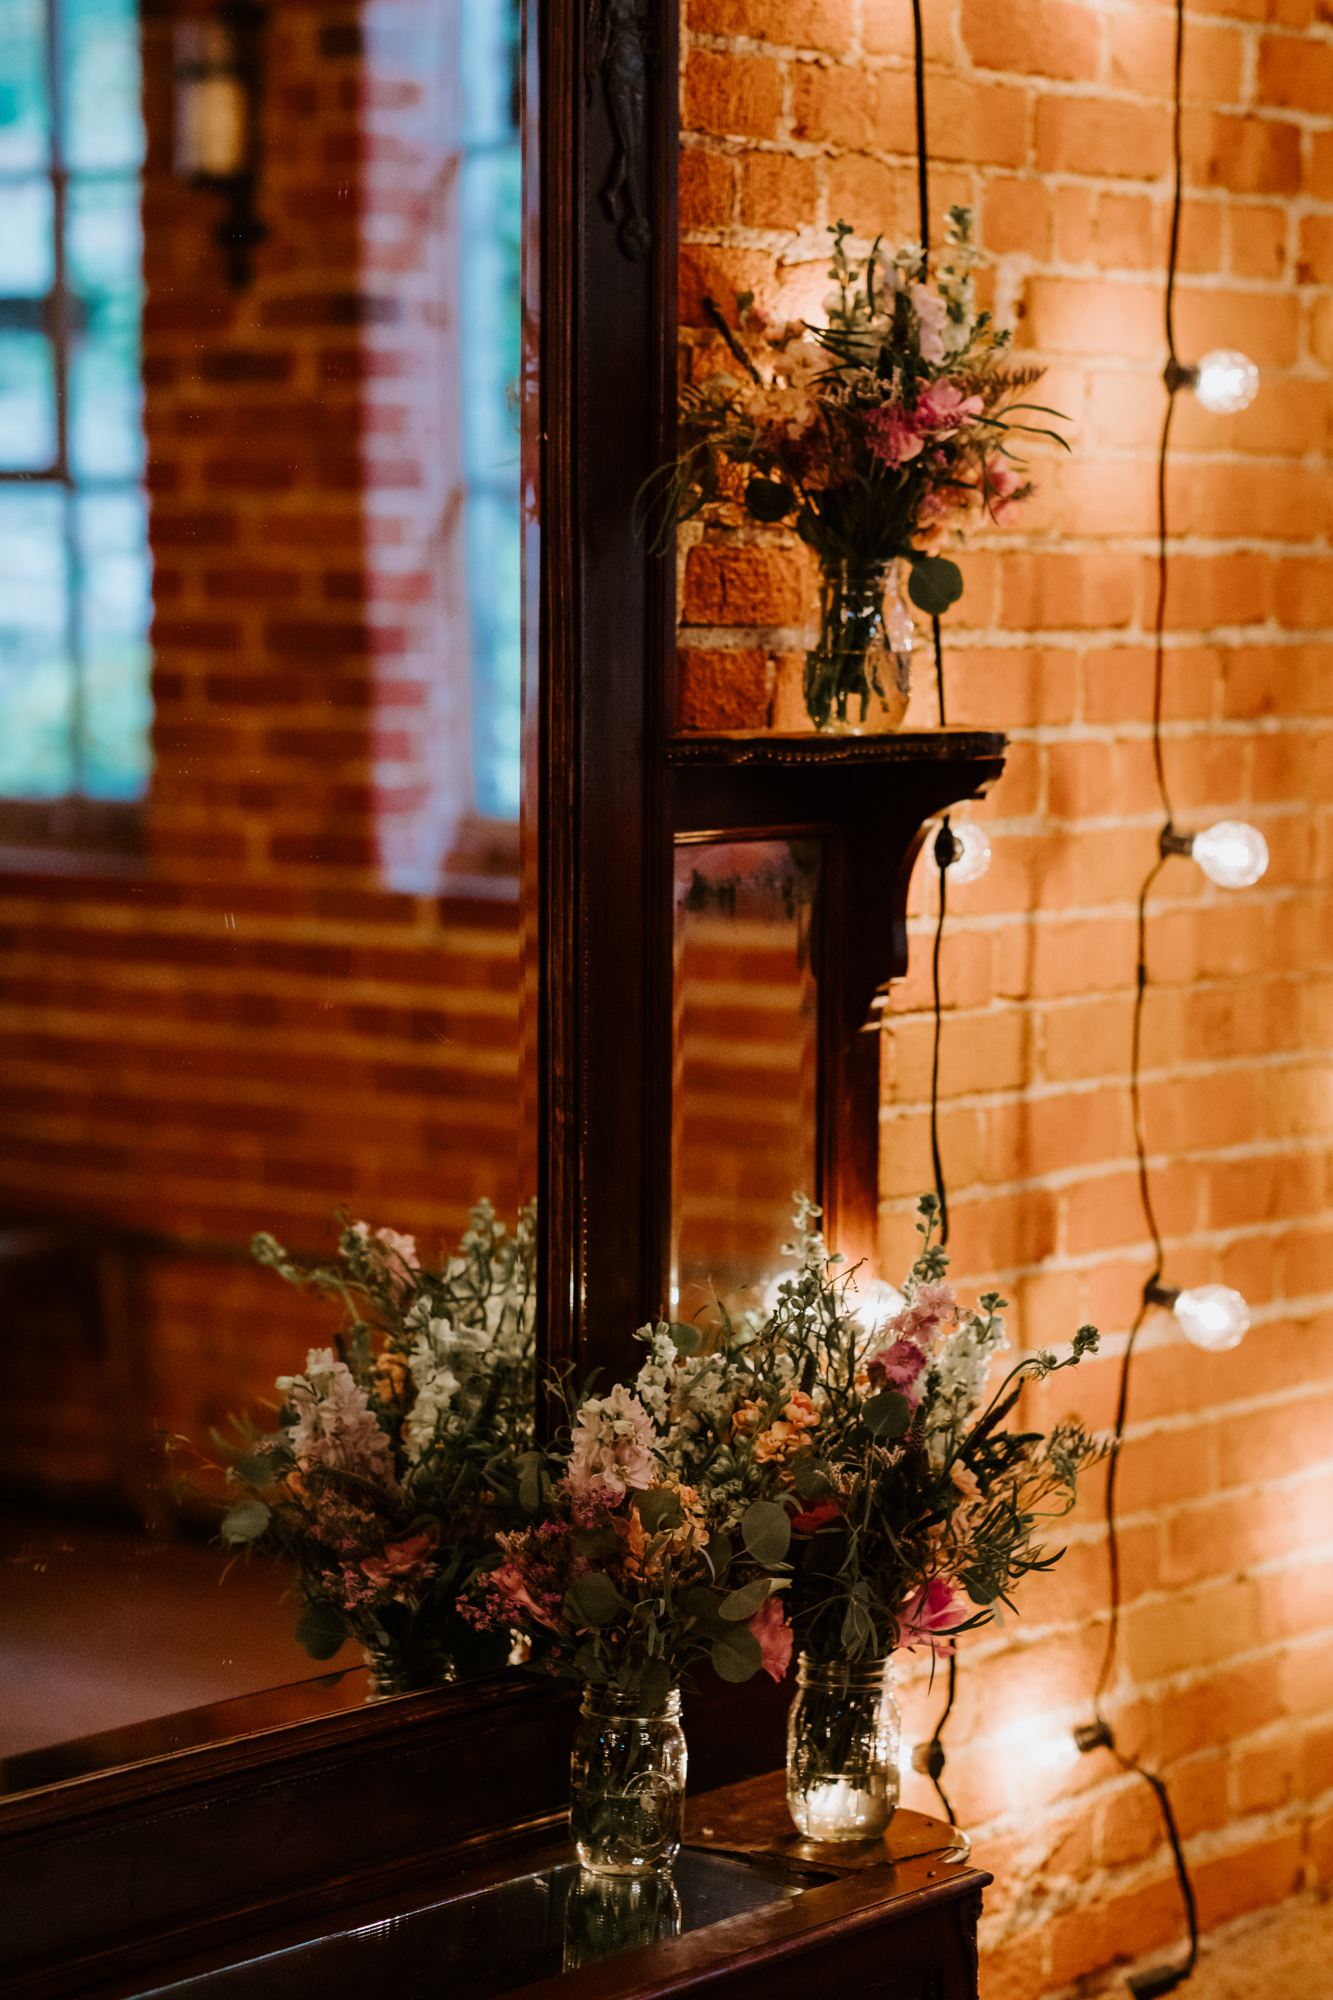 Rustic edison bulb wildflower ceremony set up | Carondelet House Wedding in Downtown Los Angeles | Los Angeles Wedding Photographer |Tida Svy Photography | www.tidasvy.com